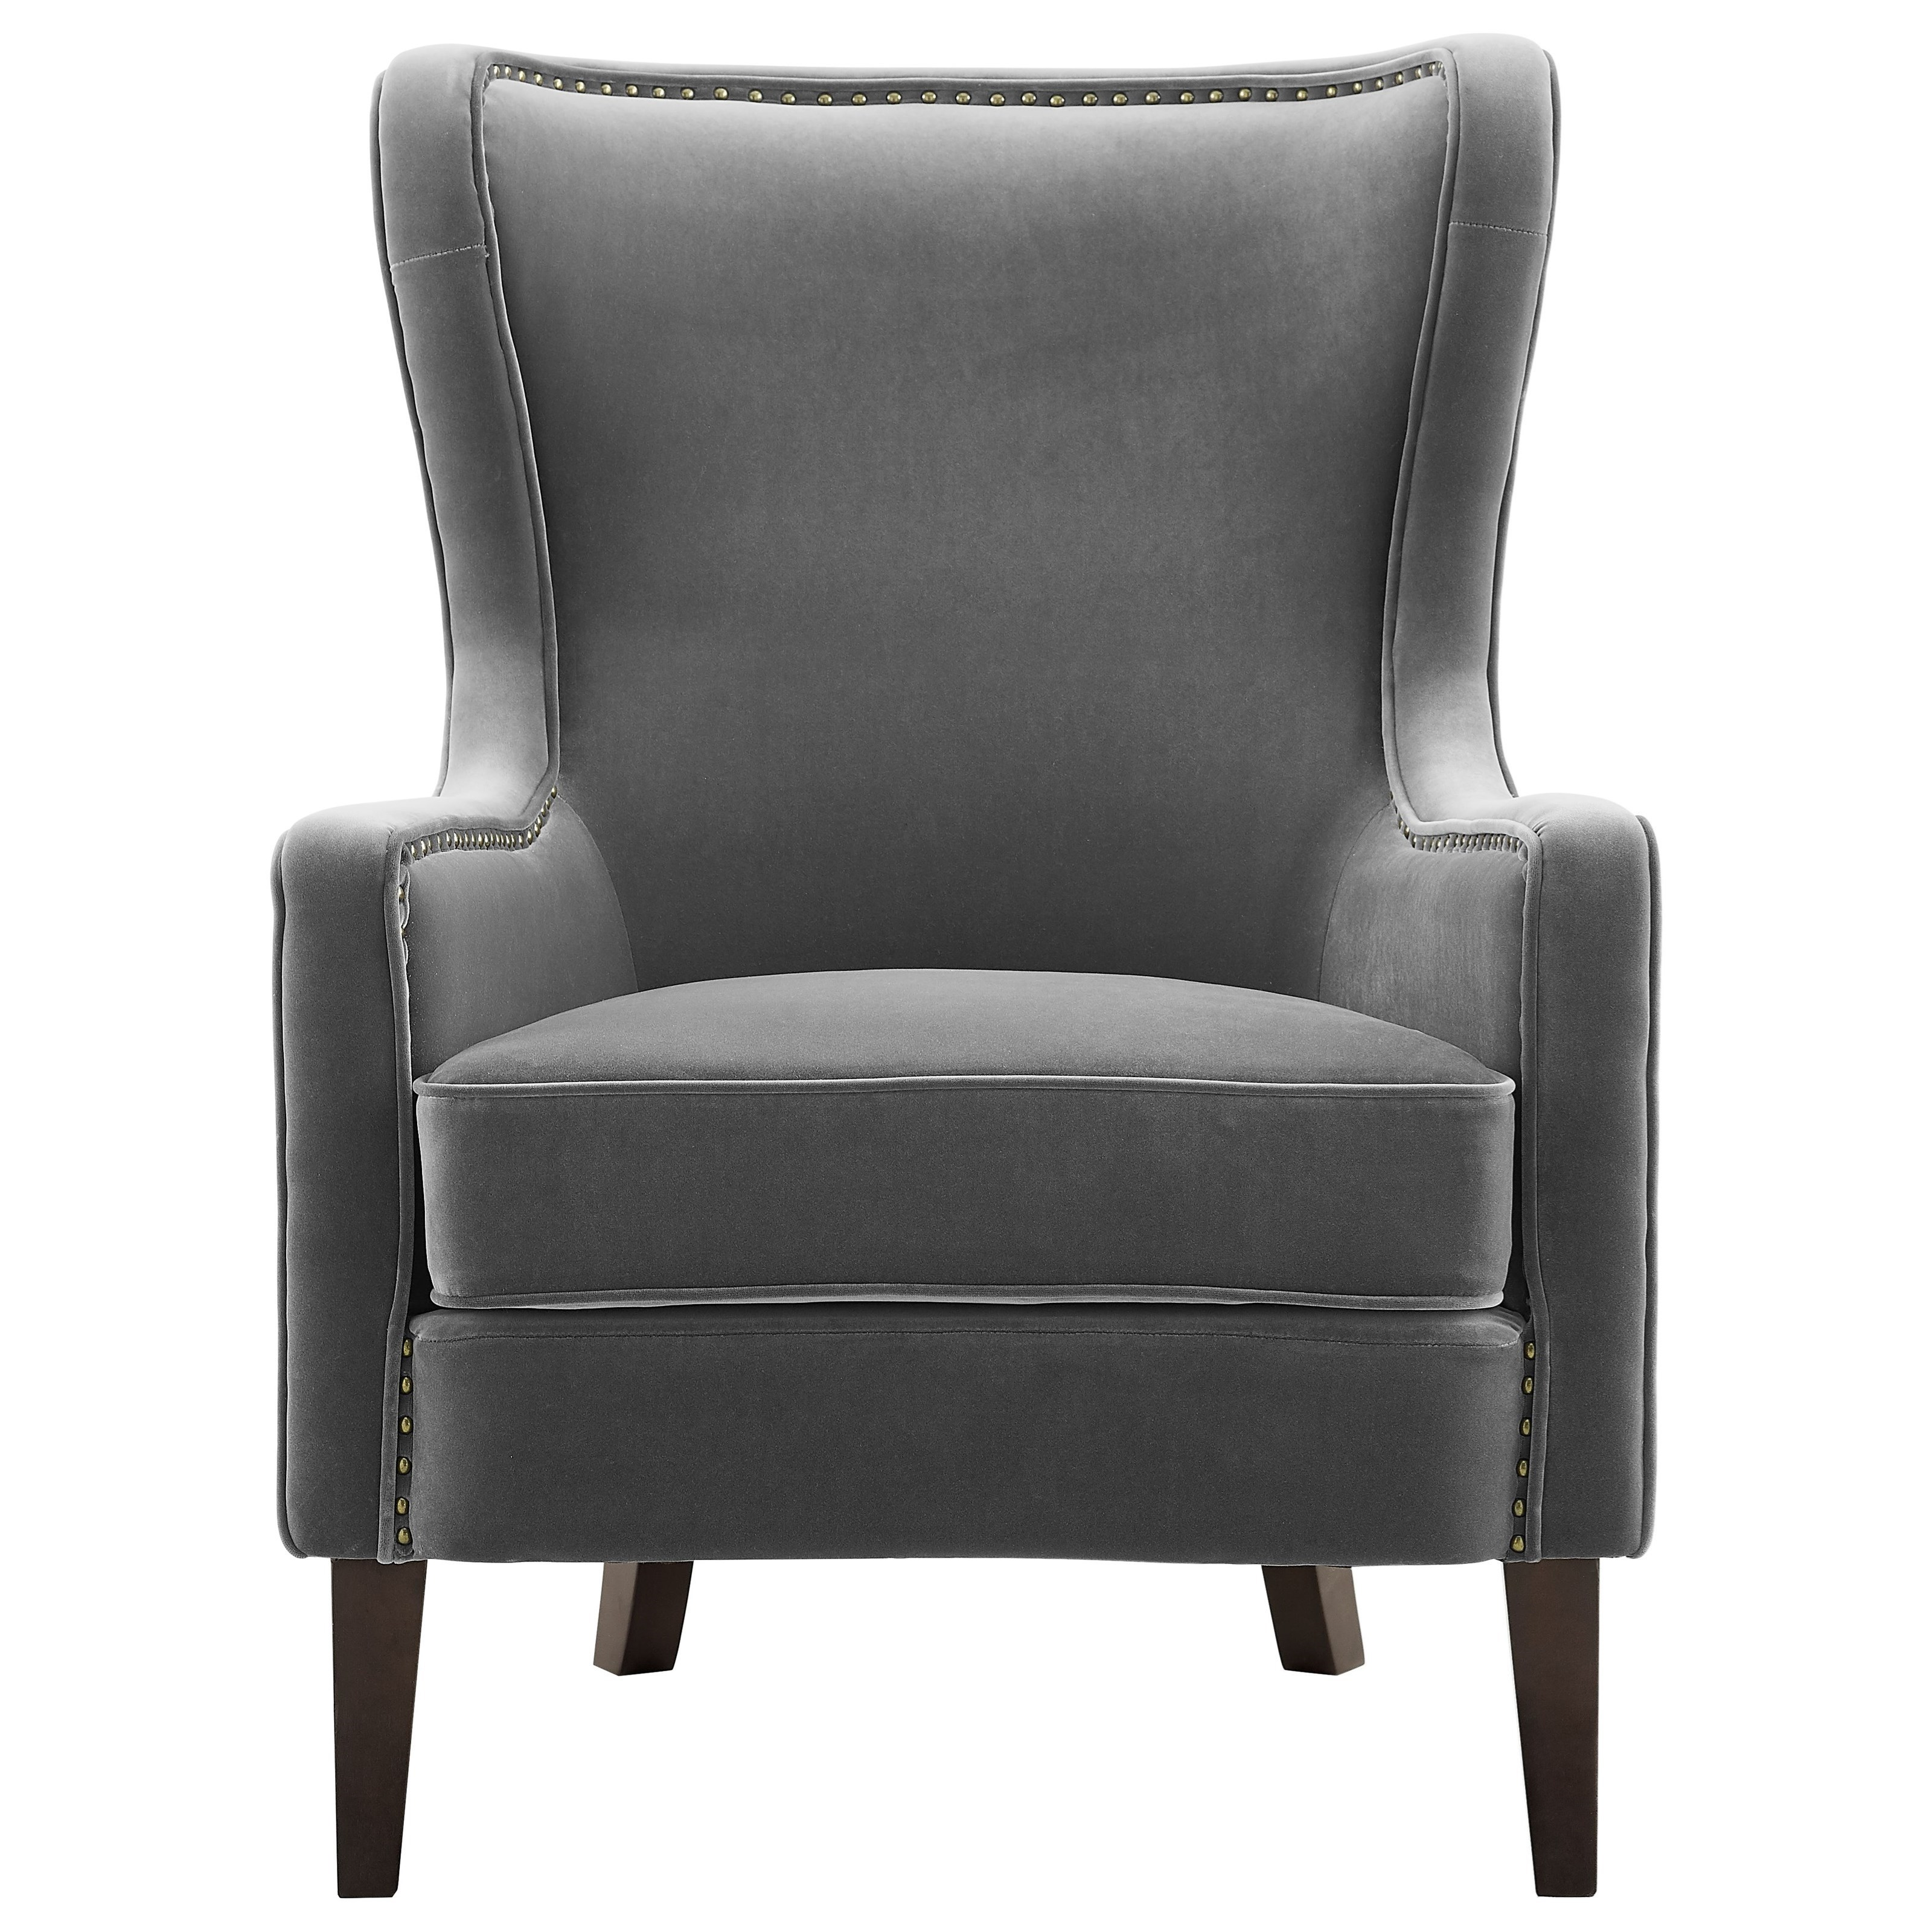 Rosco Velvet Accent Chair w/ Nailhead Trim by Steve Silver at Northeast Factory Direct